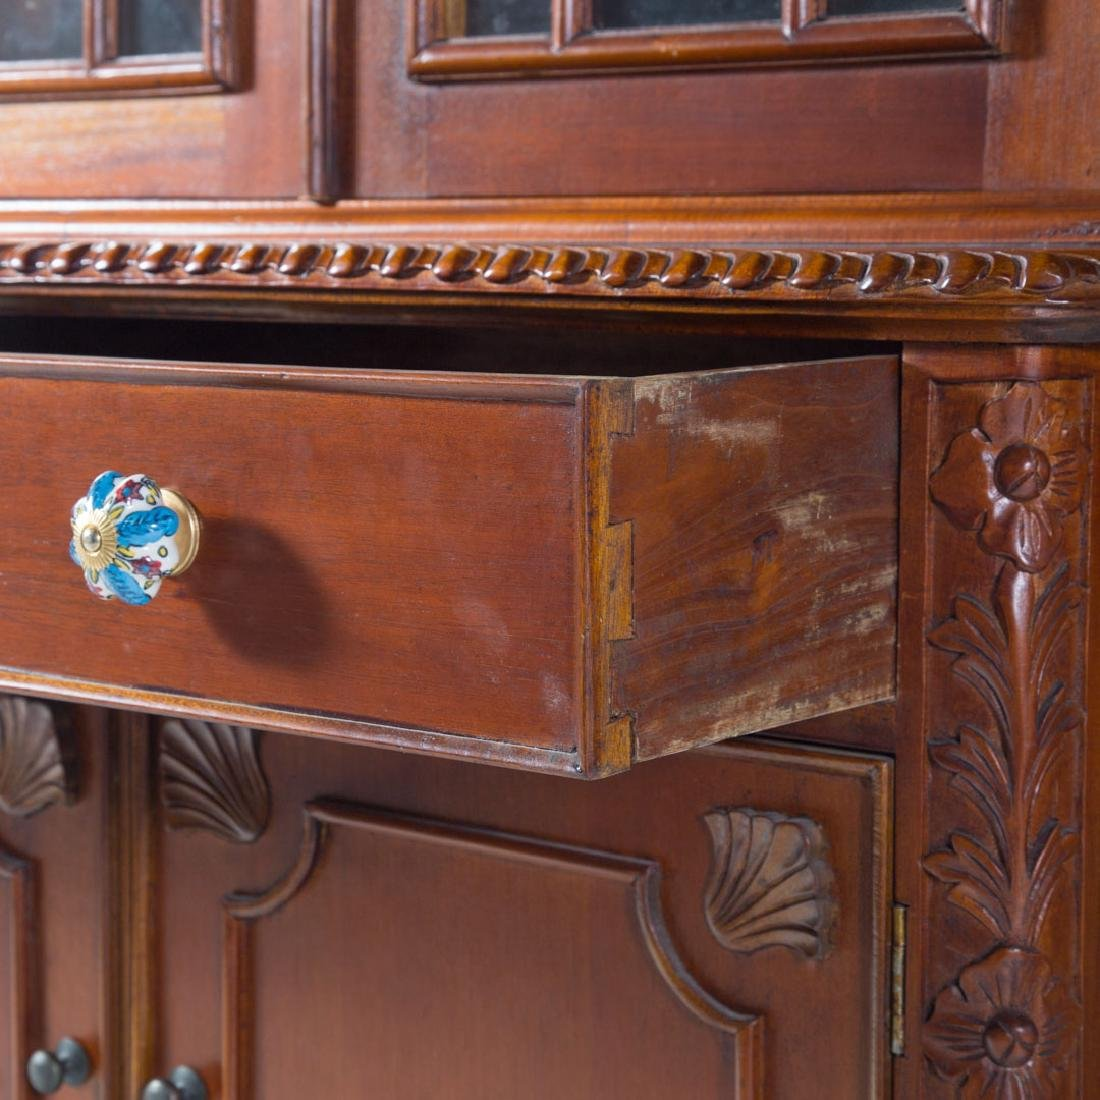 Chippendale style mahogany breakfront - 4